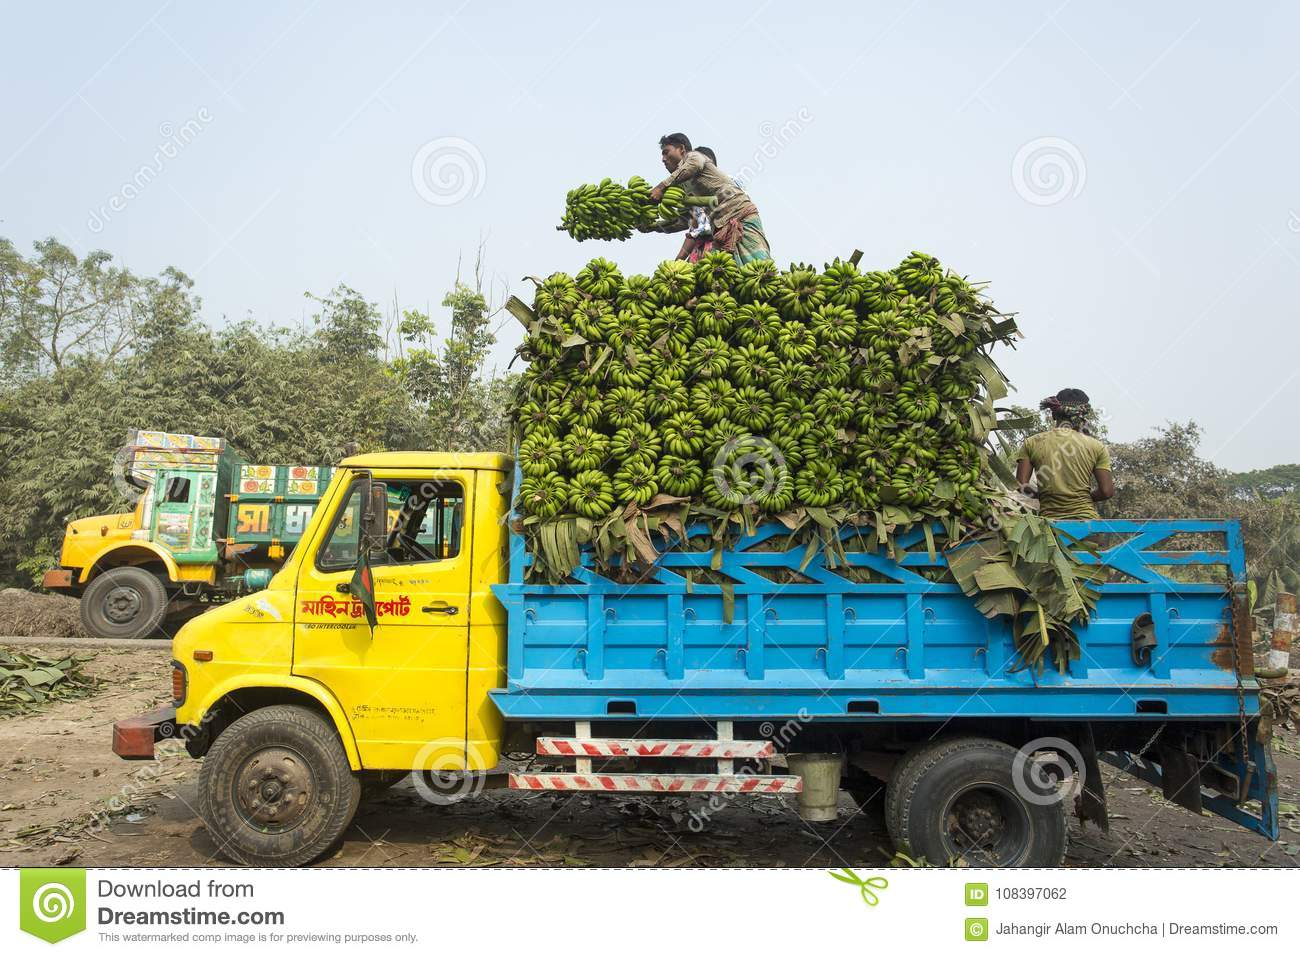 876 Loading Pickup Photos Free Royalty Free Stock Photos From Dreamstime